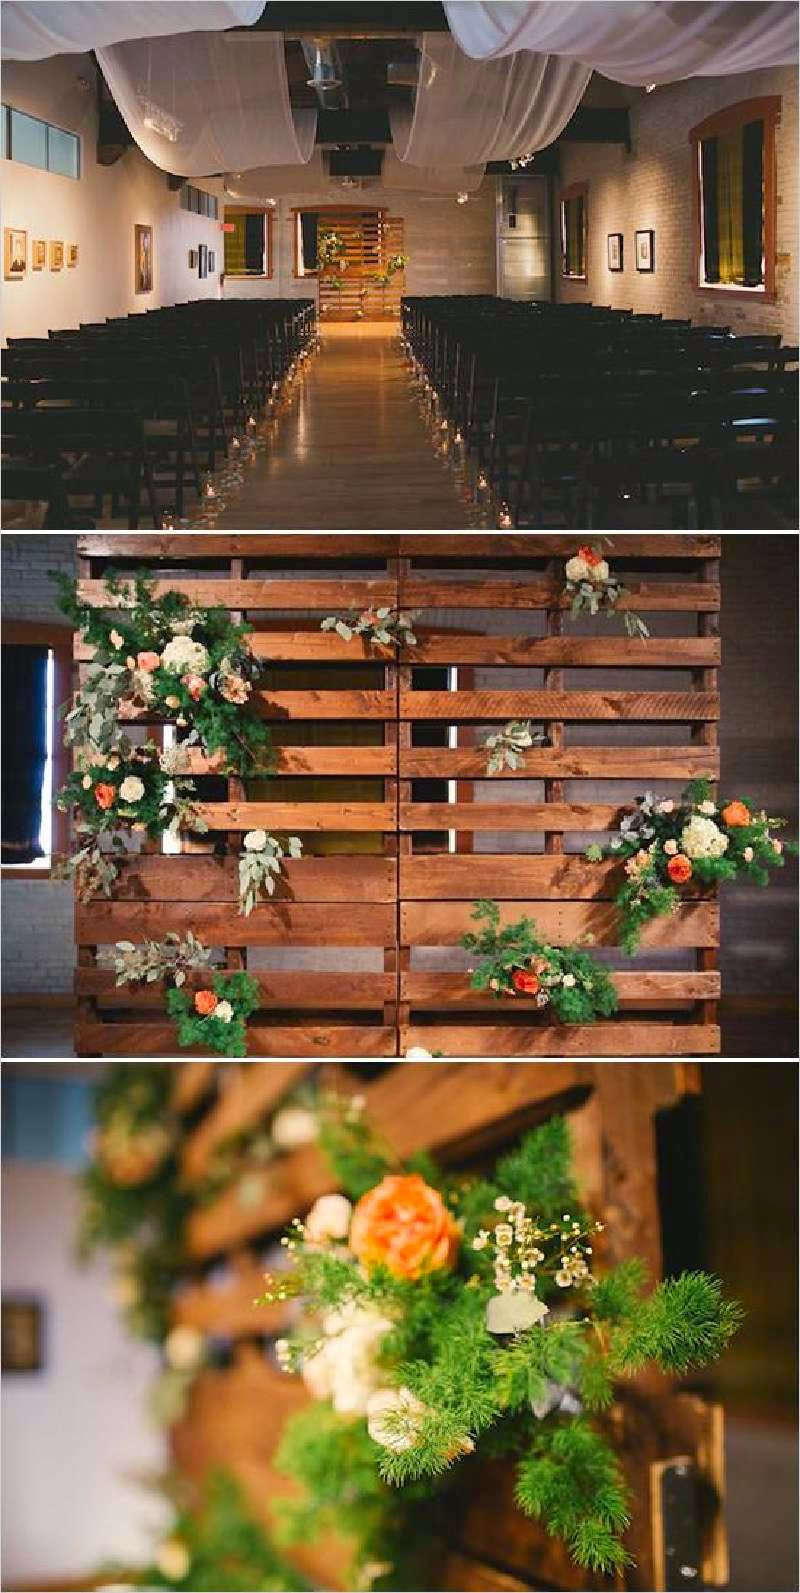 13 ideas de decoraci n para una boda - Decoracion palets jardin ...